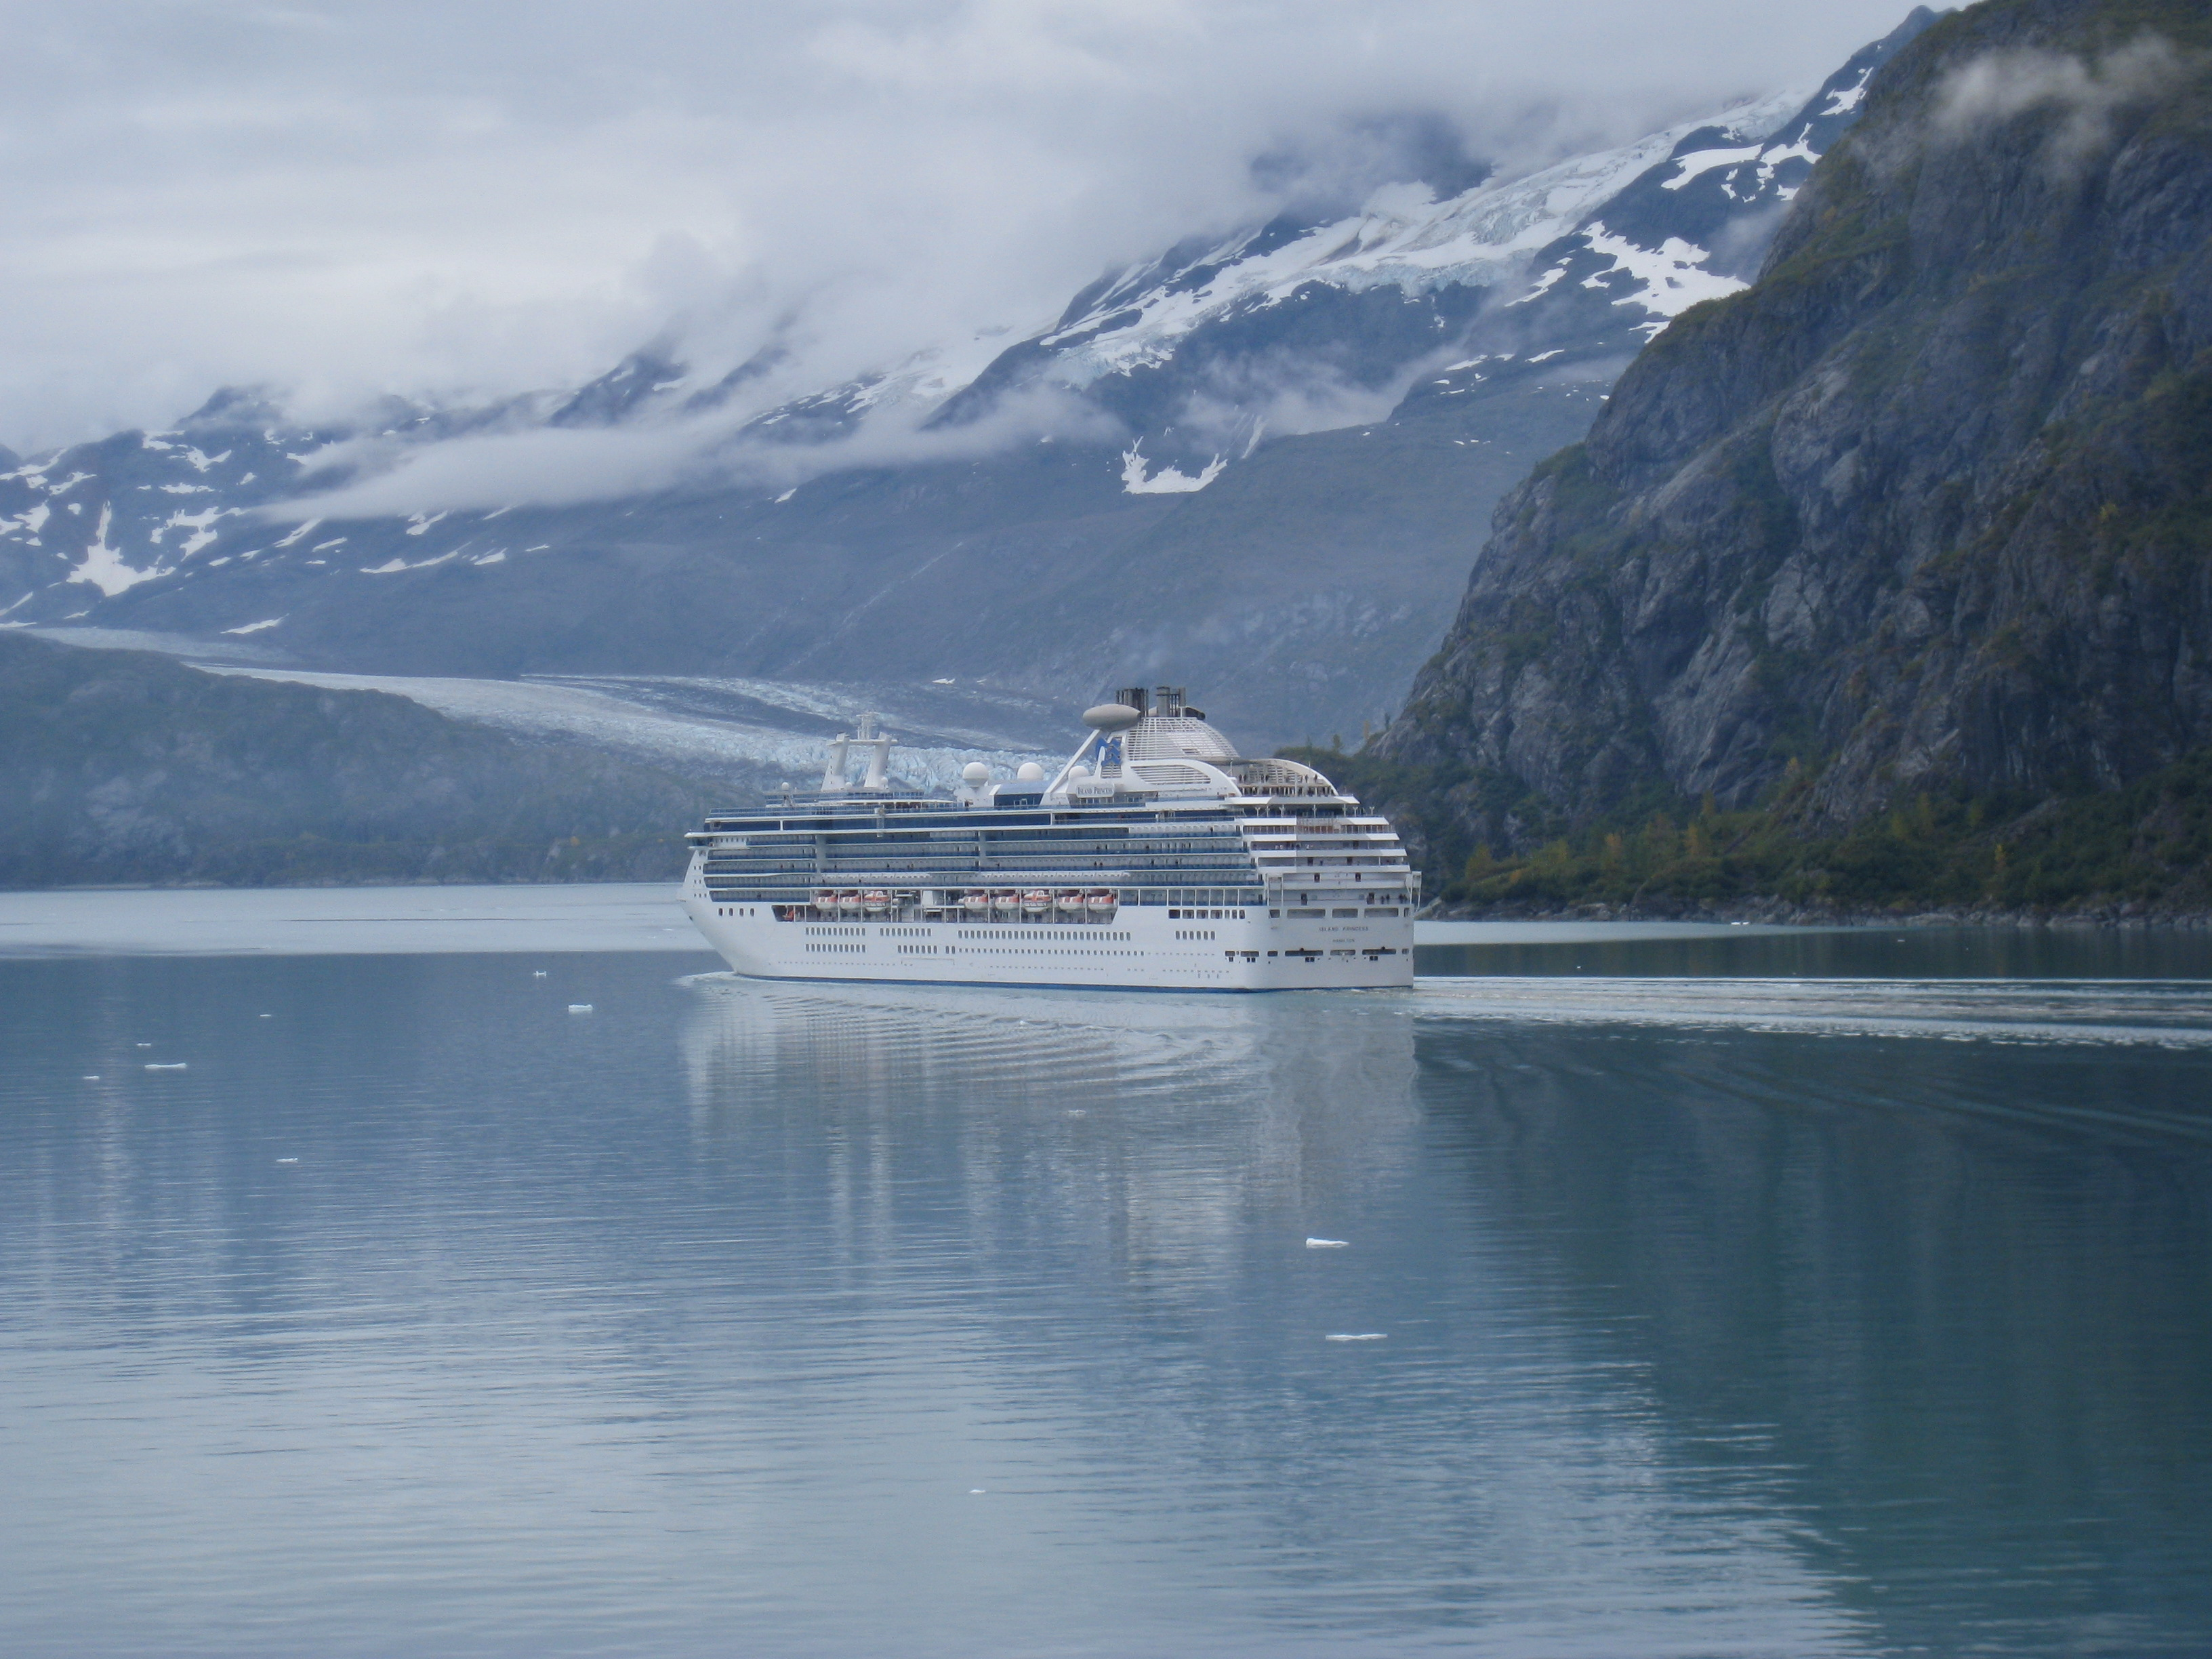 Cruising the Inside Passage to Alaska